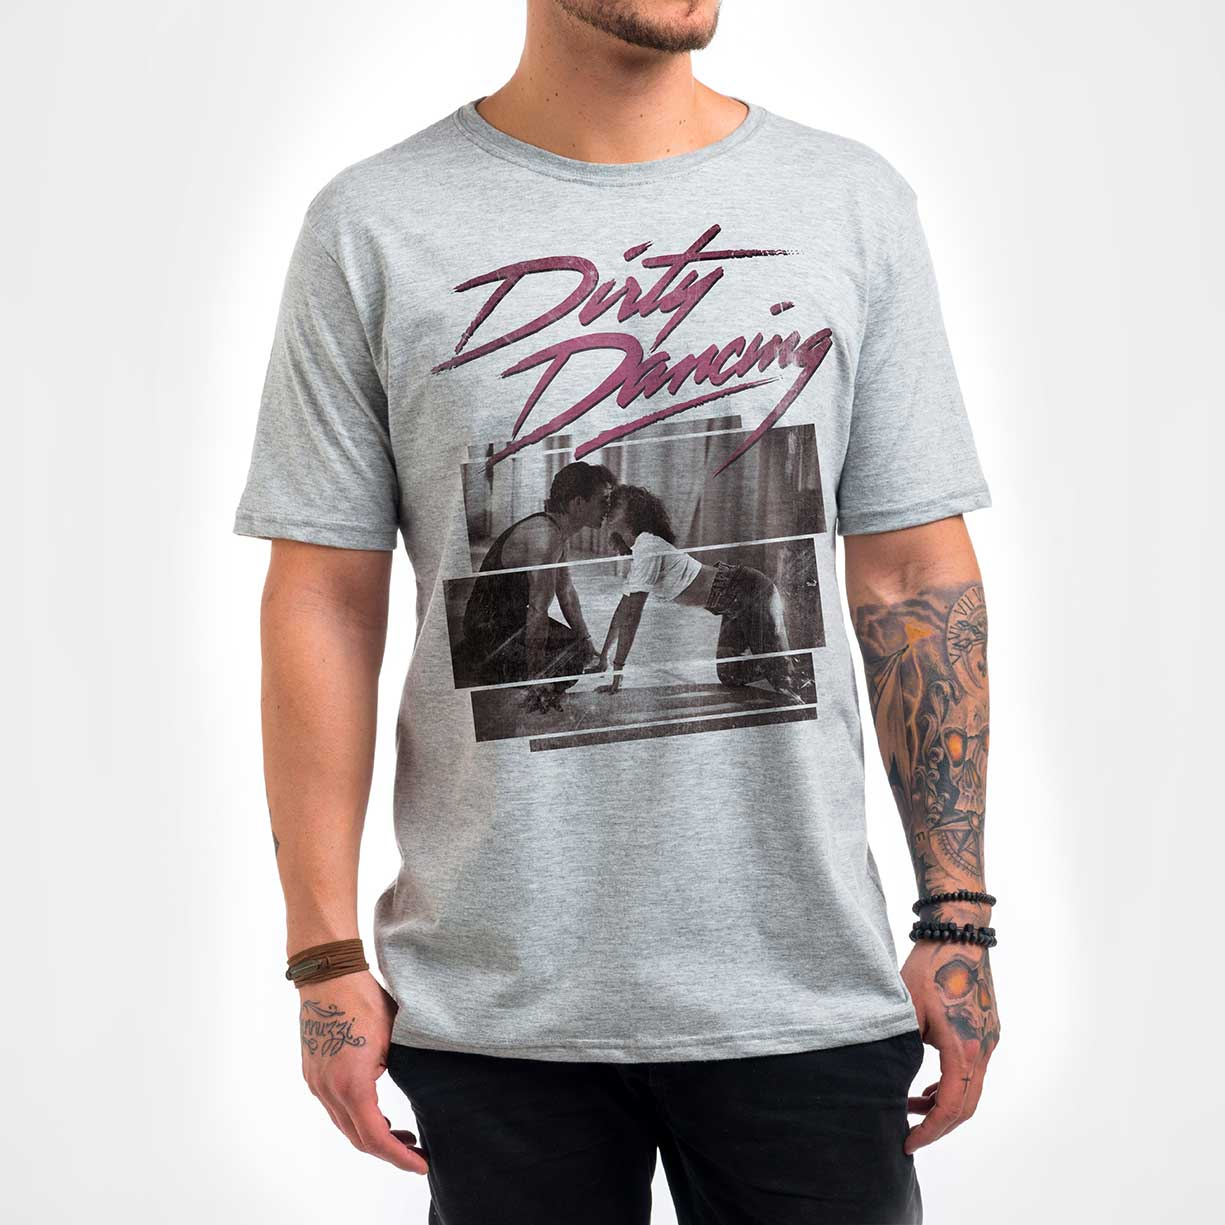 Camisa Masculina - Dirty Dancing